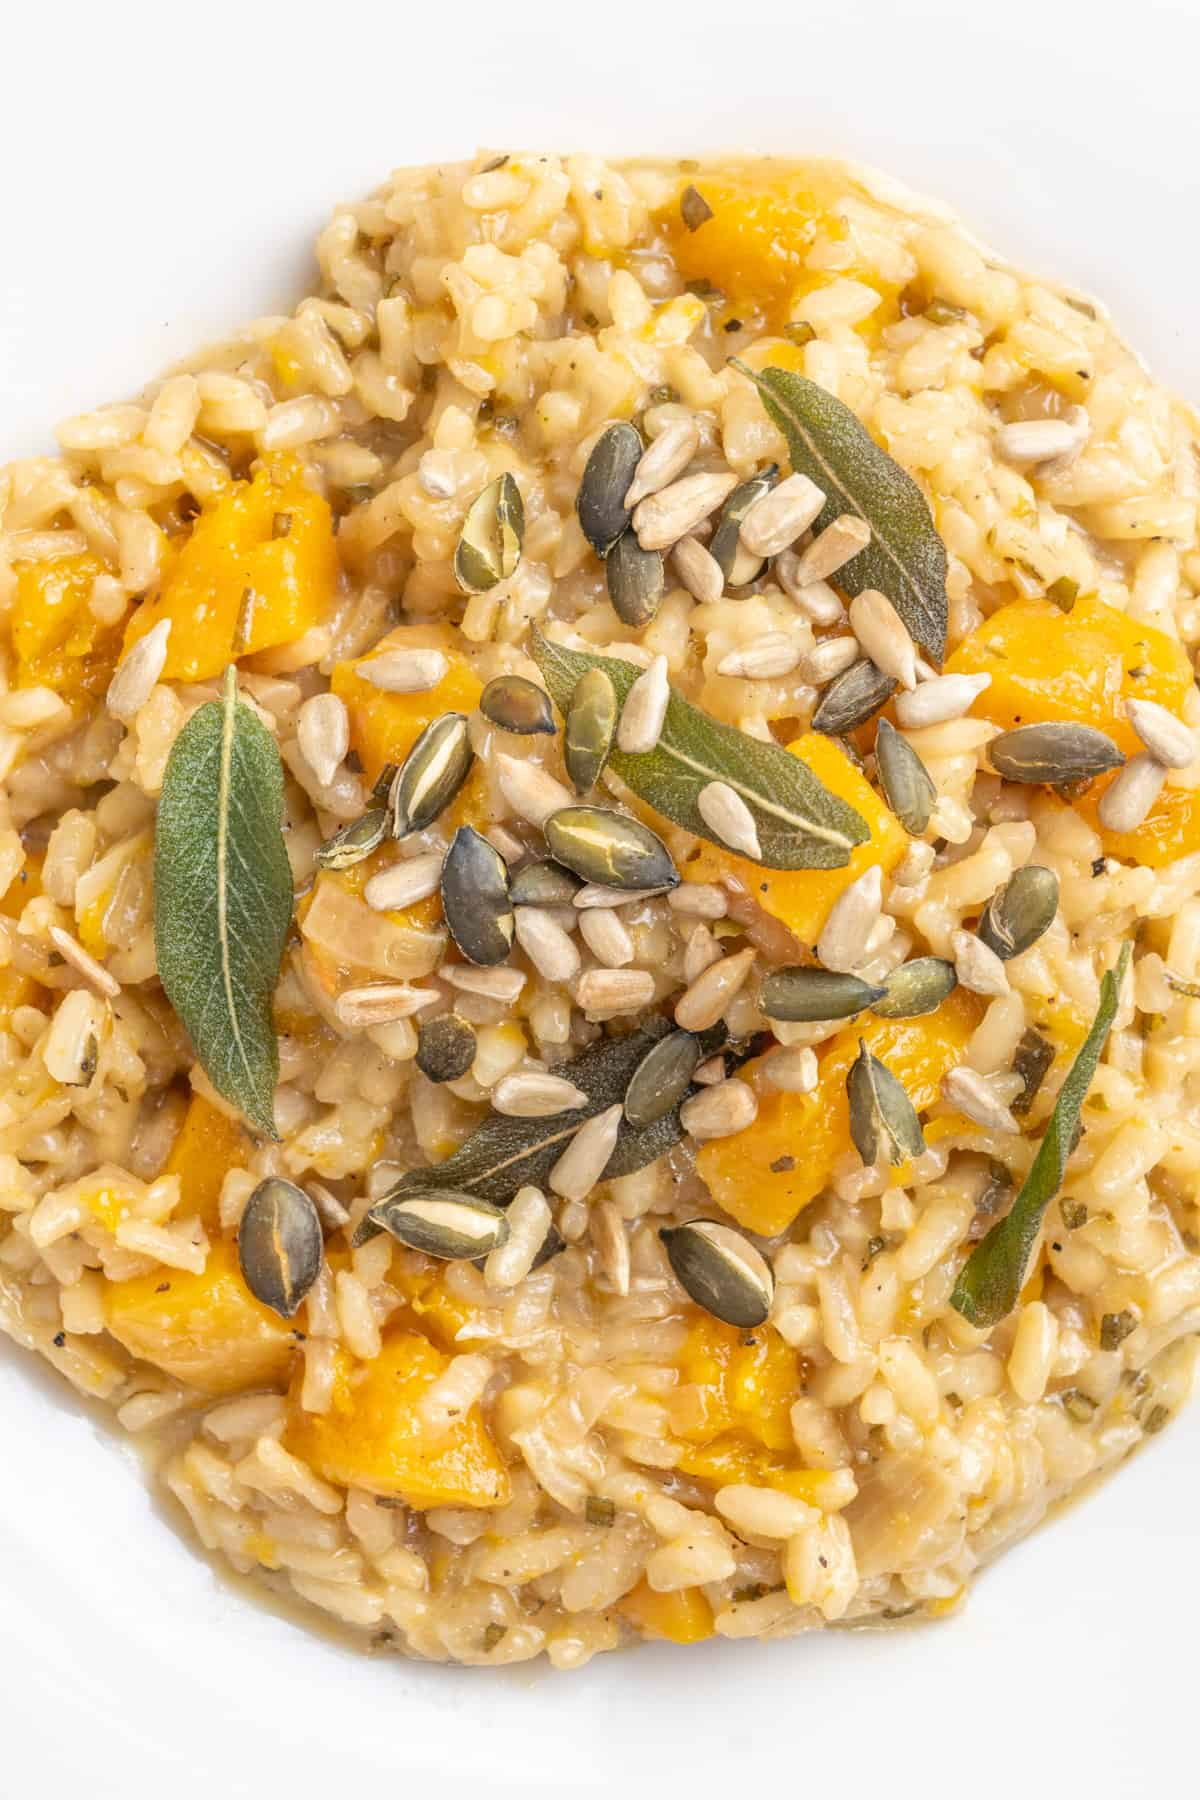 Toasted pumpkin and sunflower seeds sprinked on top of the final dish.